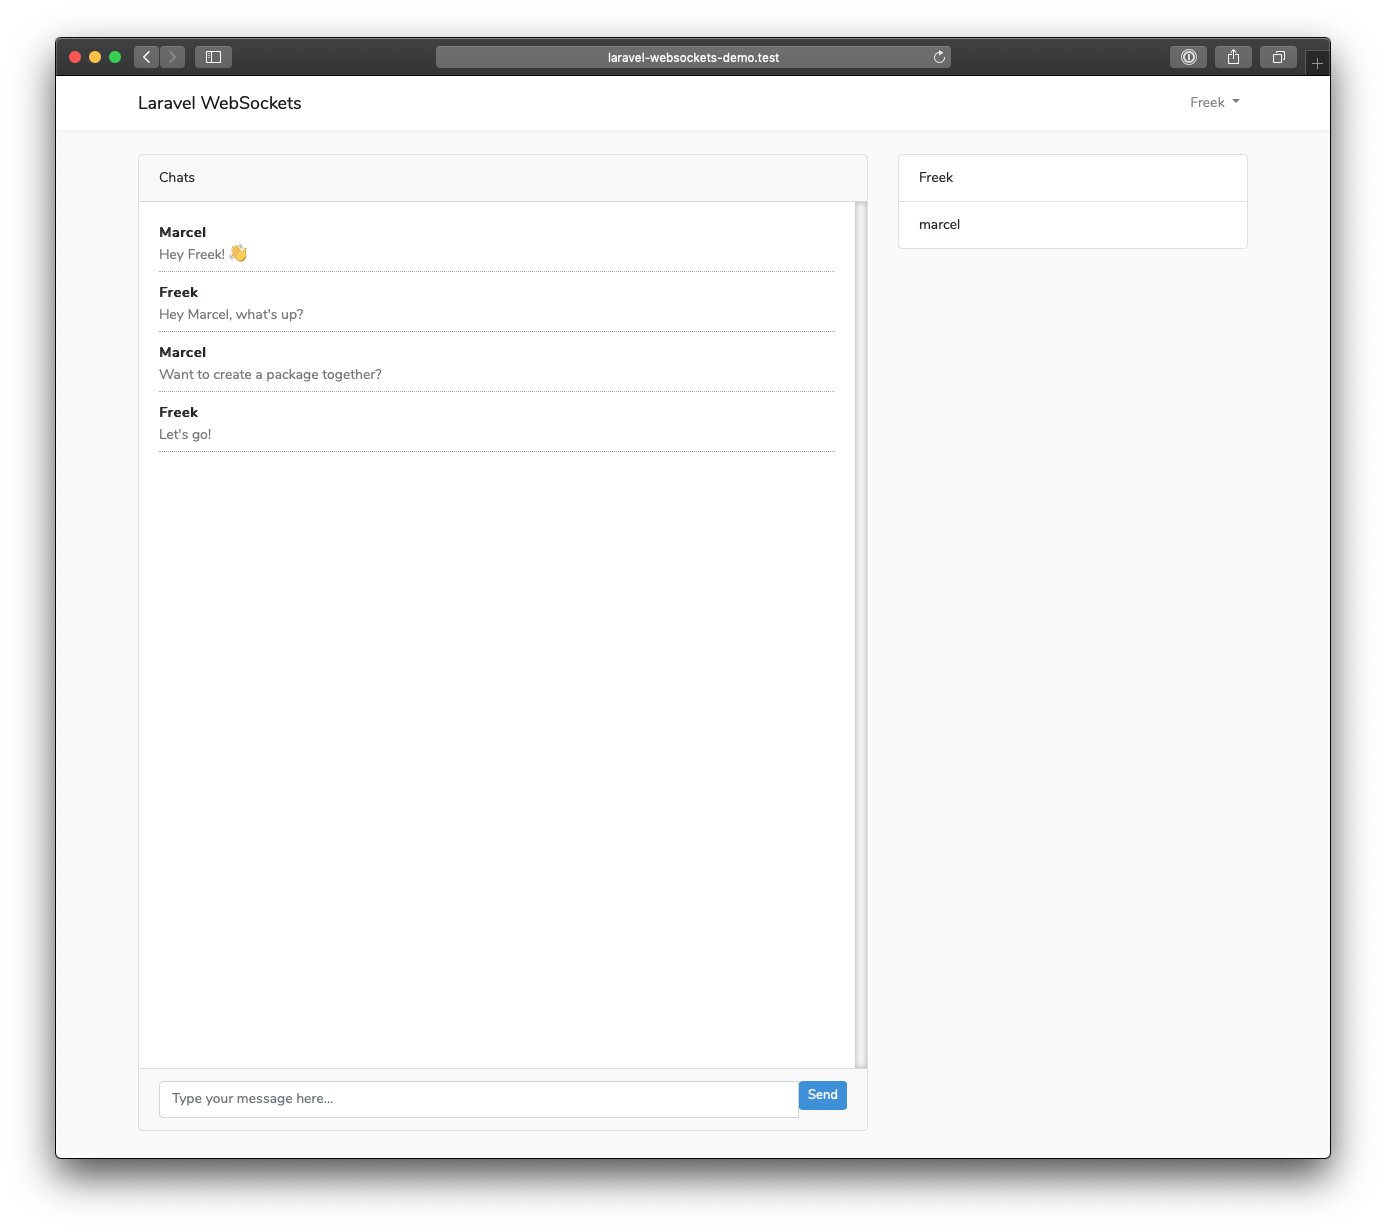 Introducing laravel-websockets, an easy to use WebSocket